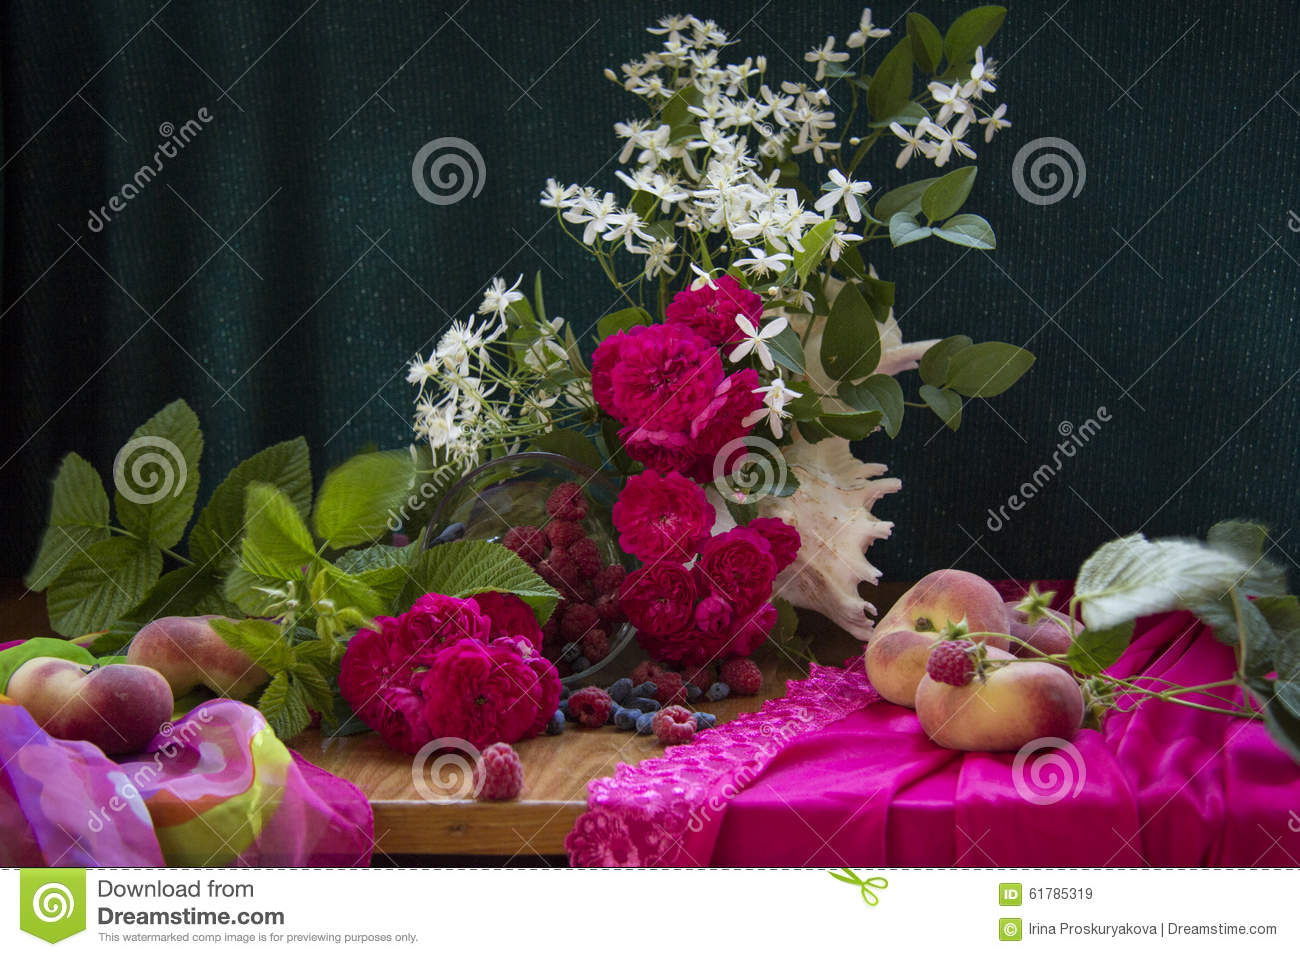 Roses with peaches